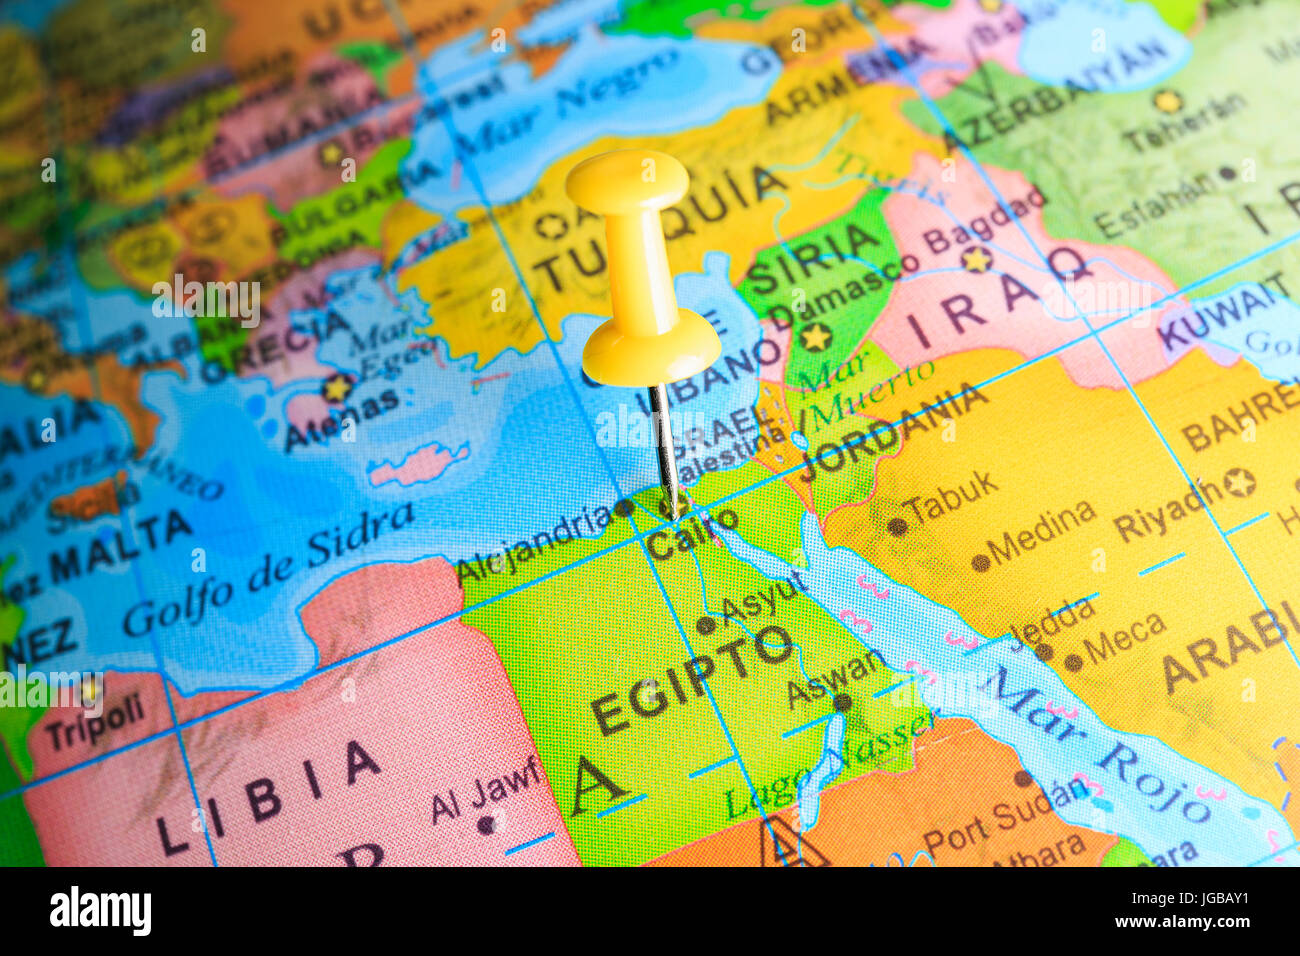 map pinpoint stock photos map pinpoint stock images page 2 alamy